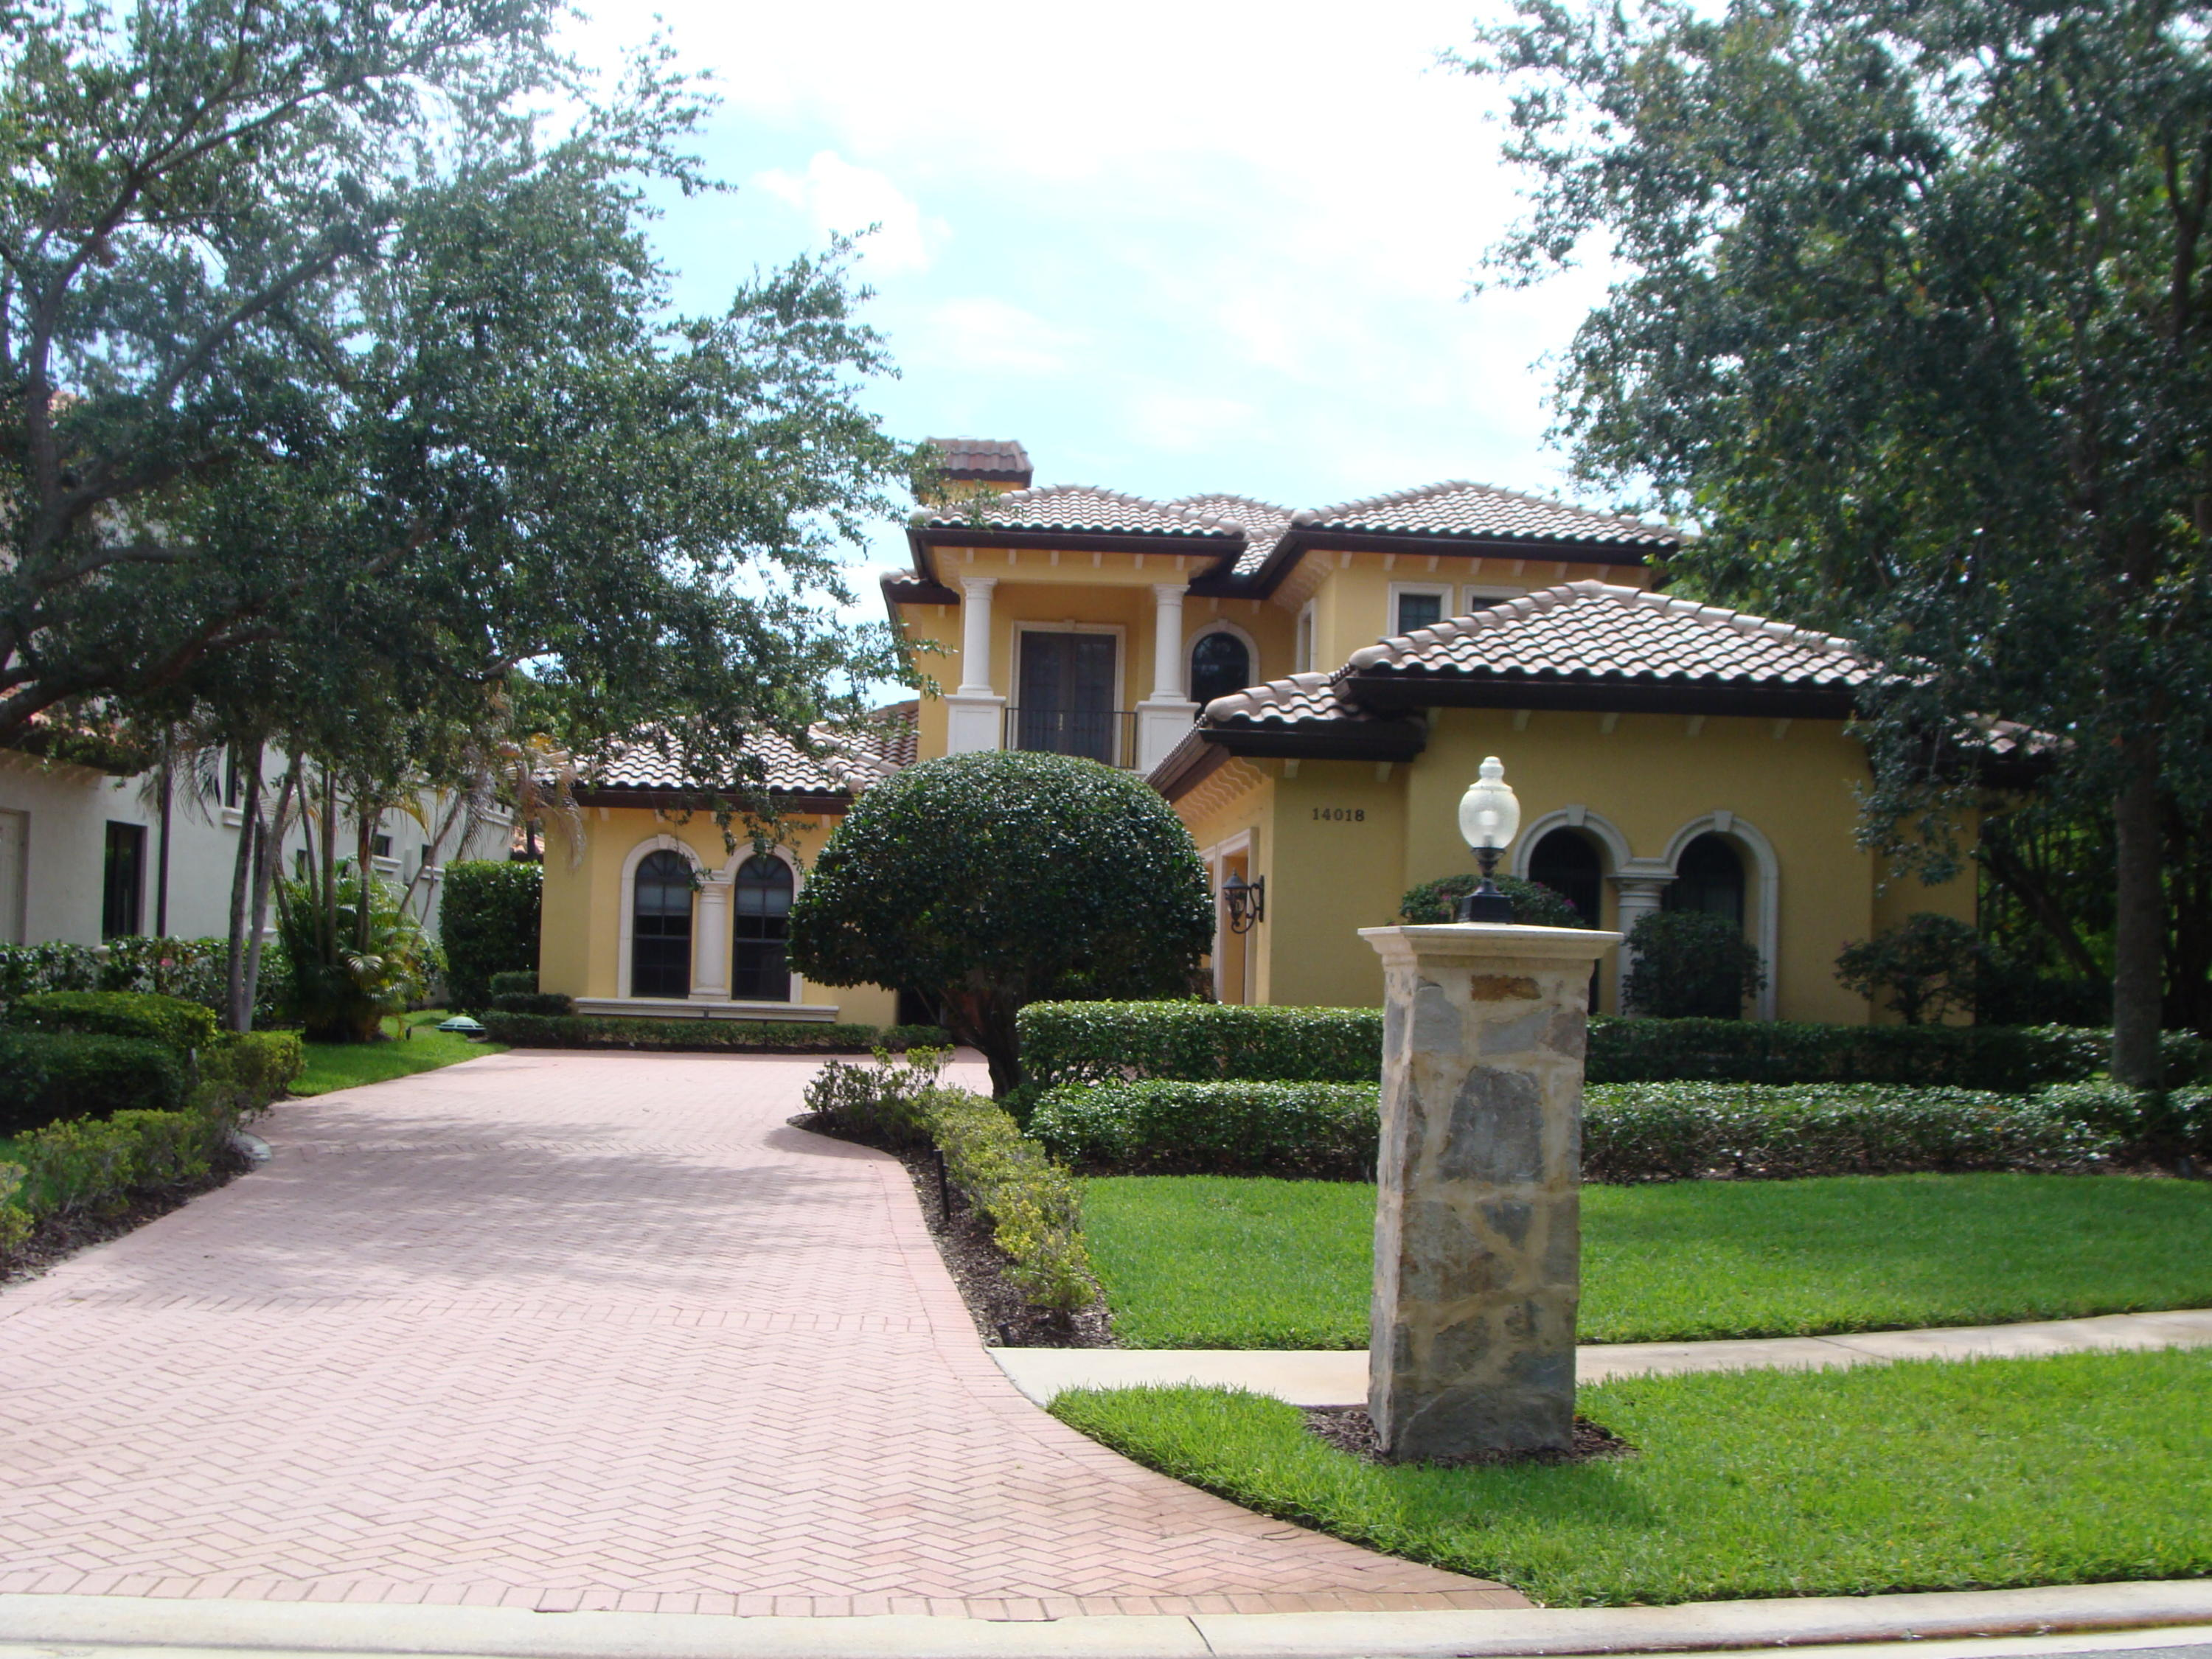 BRING OFFERS > MOTIVATED SELLERS! Custom waterfront luxury estate home in ''The Cove'' a private gated community with canal off the main intracoastal. Soaring ceilings and marble floors welcome you as you enter the grand foyer. Kitchen features European custom designed cabinets, wolf stove, Miele cook tops, double oven, Miele coffee maker, sub zero fridge and large island with granite counters. The interior features high end marble flooring, coffered ceilings, media room, workout room. The master is downstairs with wet bar, large walk in closets and en-suite master bath. Exterior features include brand new roof installed 2021, hurricane impact window & doors, summer kitchen, pool w/ sun ledge, spa, volleyball and basketball court and one of the largest lots in the community.